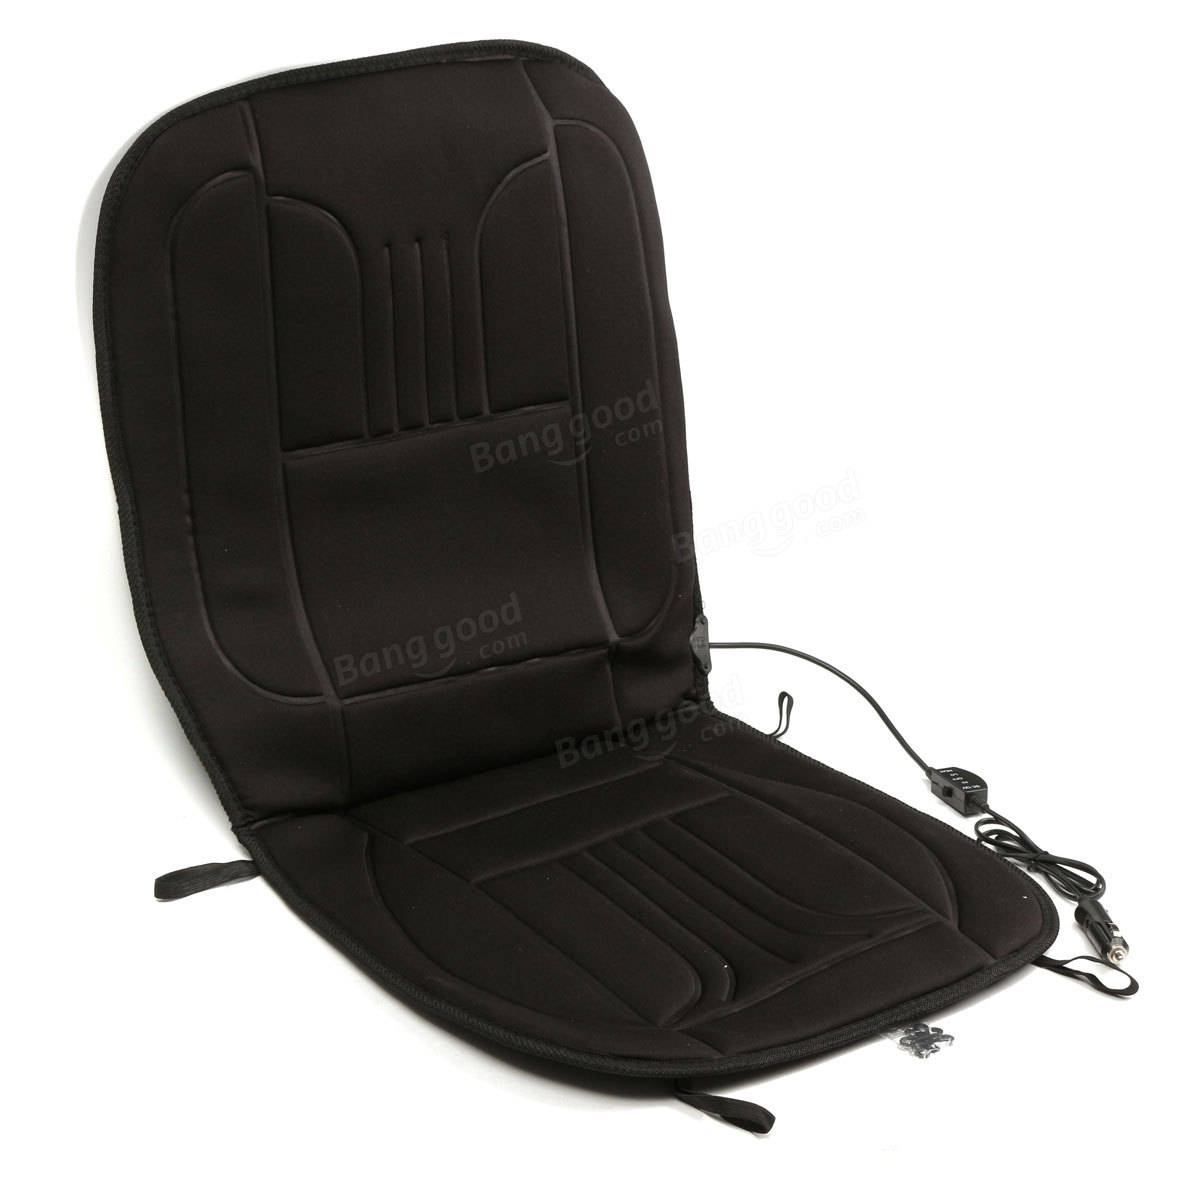 heated back massage chair cushion massager car seat home pad pain lumbar neck 689718203721 ebay. Black Bedroom Furniture Sets. Home Design Ideas